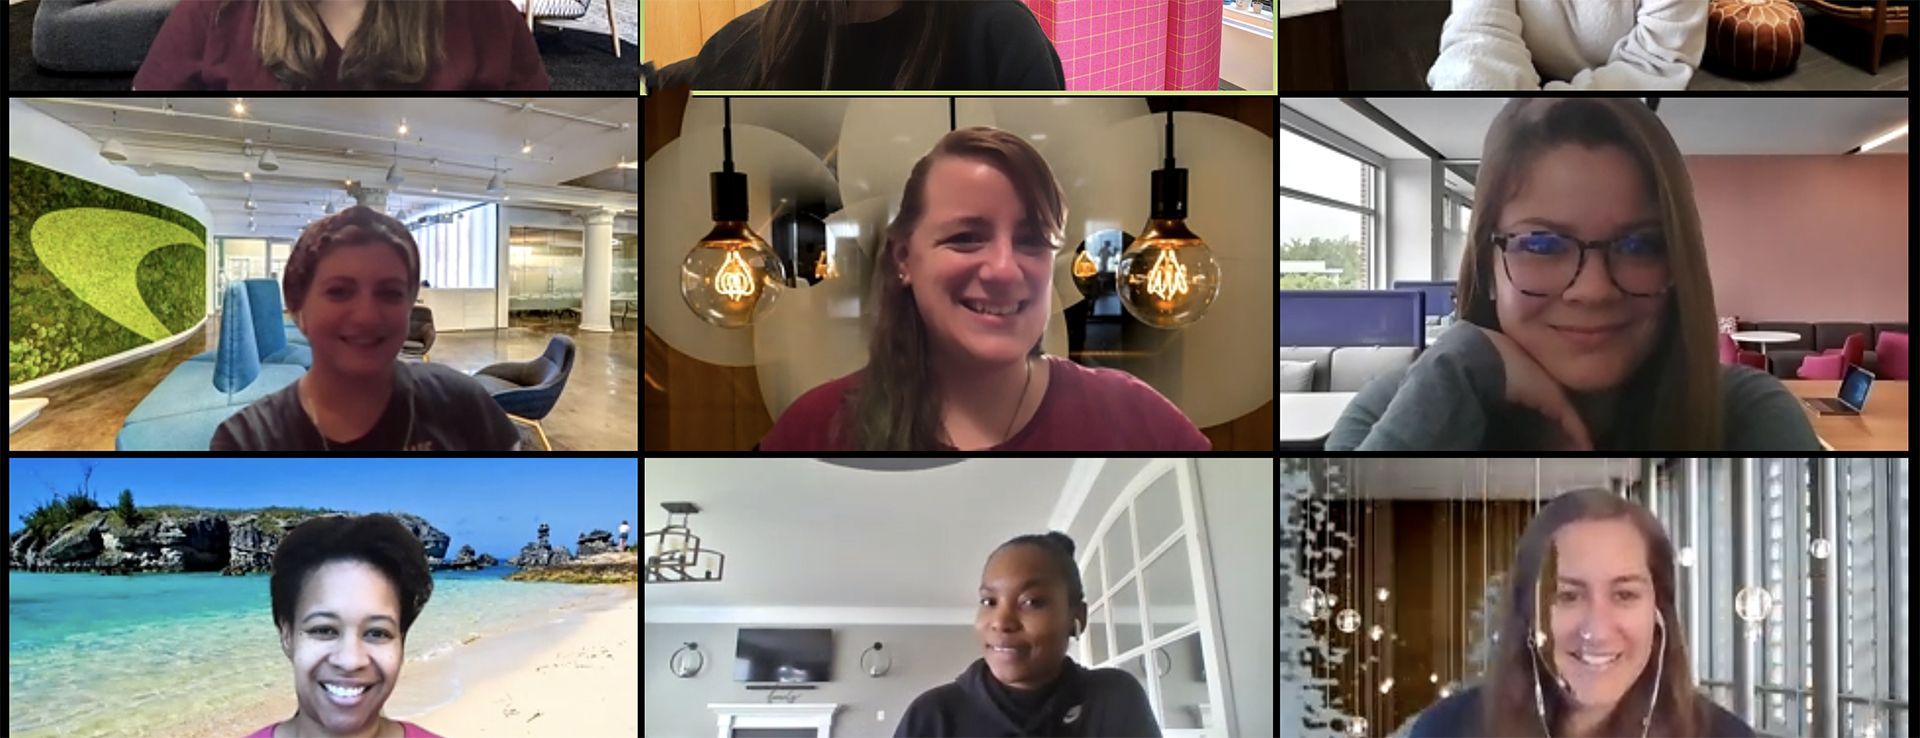 Capital One provides Zoom backgrounds for virtual interviews and meetings